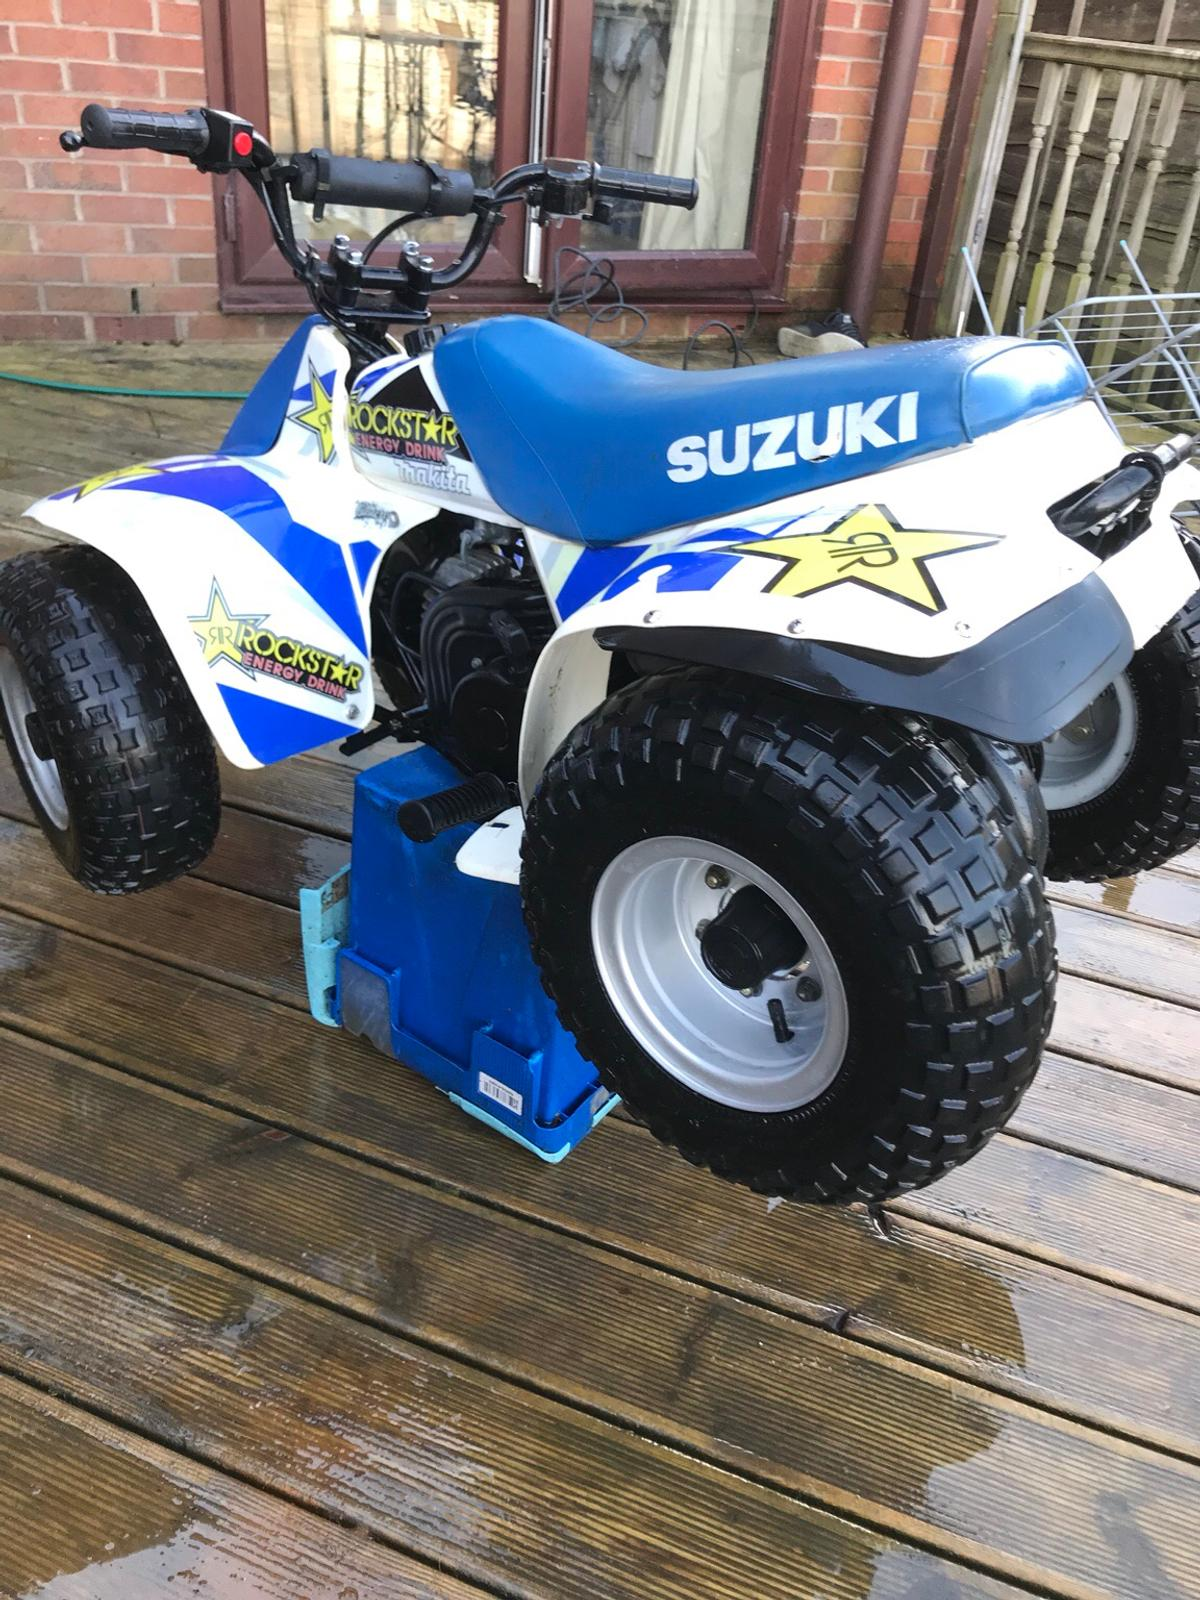 Suzuki Lt50 in M26 Radcliffe for £795 00 for sale | Shpock